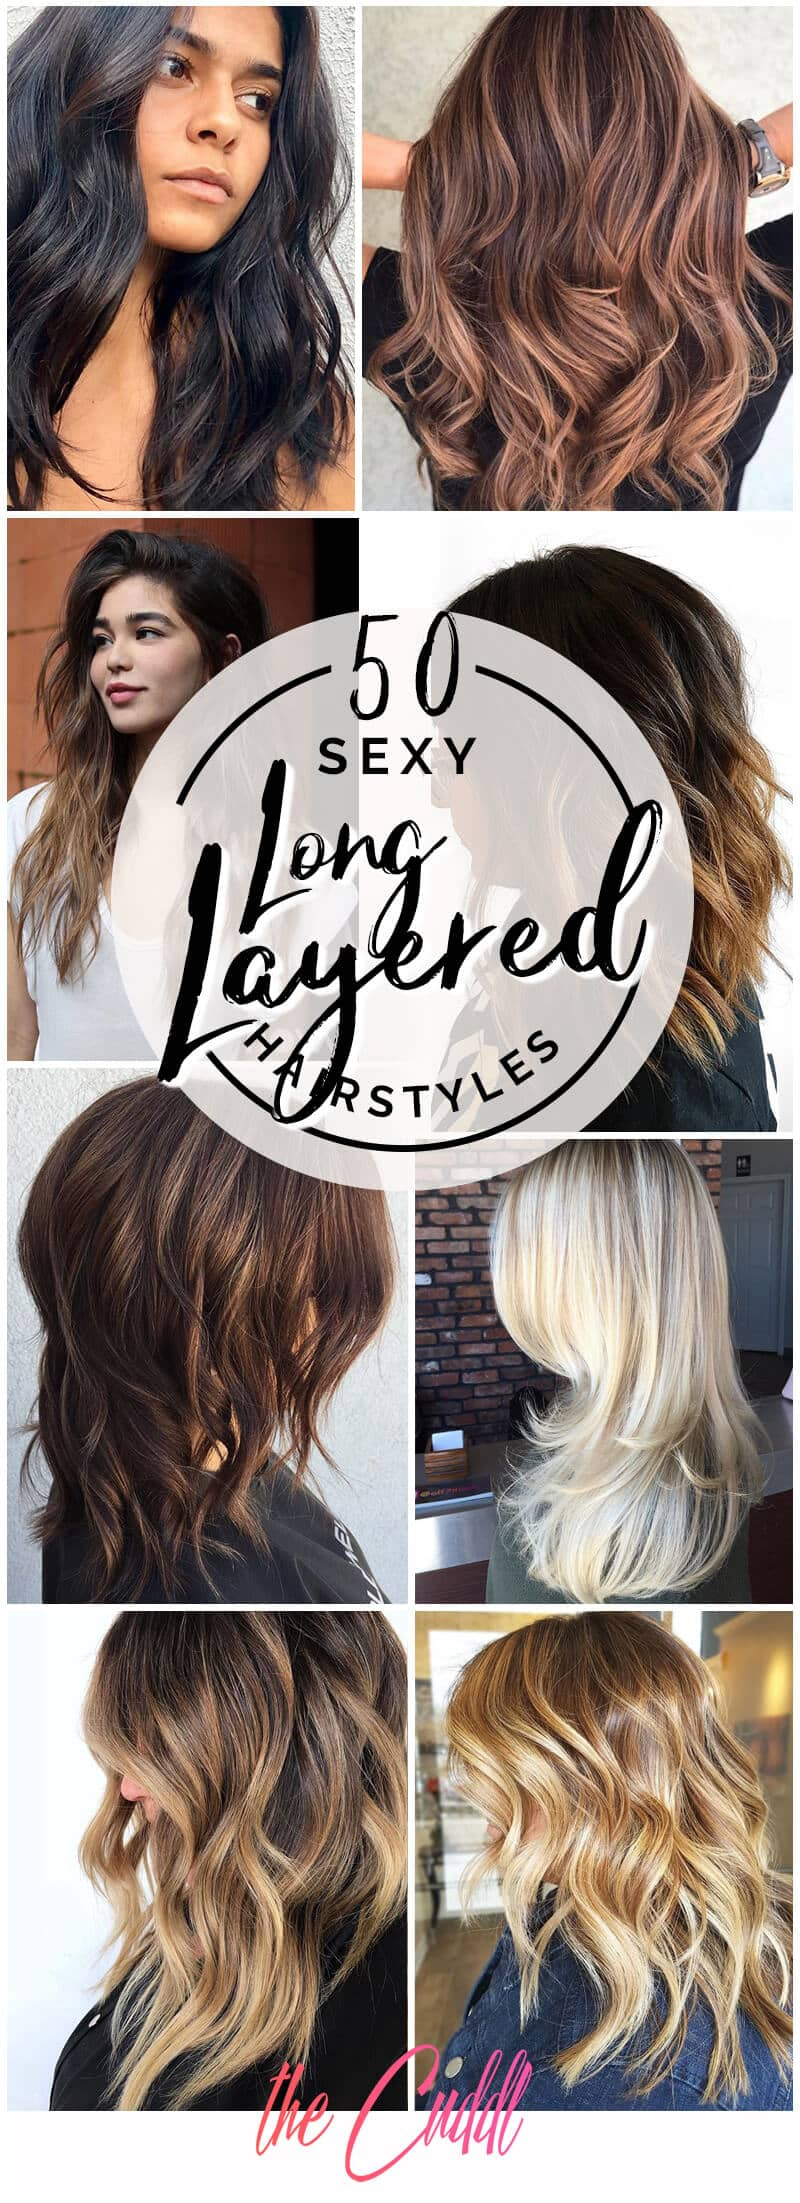 10 Sexy Long Layered Hair Ideas to Create Effortless Style in 10